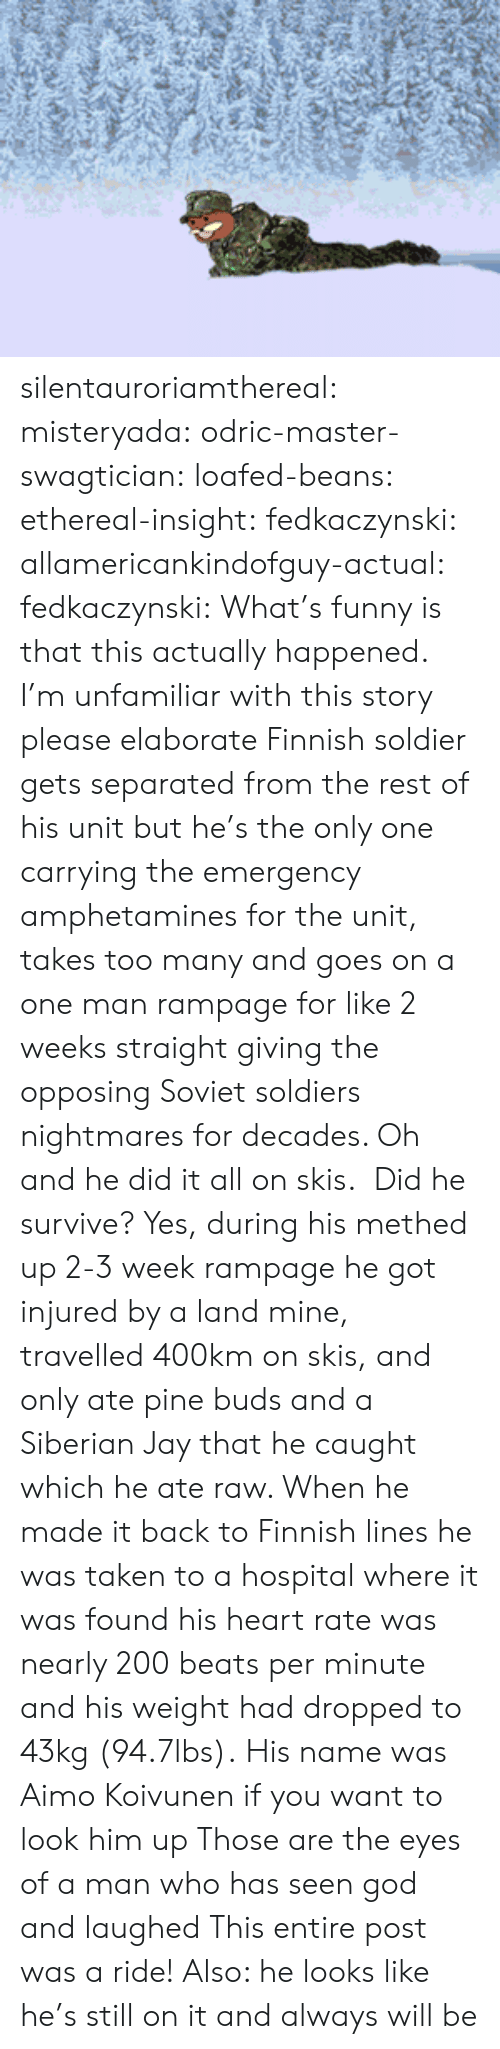 skis: silentauroriamthereal:  misteryada:  odric-master-swagtician:  loafed-beans:  ethereal-insight:  fedkaczynski:  allamericankindofguy-actual:  fedkaczynski:  What's funny is that this actually happened.   I'm unfamiliar with this story please elaborate   Finnish soldier gets separated from the rest of his unit but he's the only one carrying the emergency amphetamines for the unit, takes too many and goes on a one man rampage for like 2 weeks straight giving the opposing Soviet soldiers nightmares for decades. Oh and he did it all on skis.    Did he survive?  Yes, during his methed up 2-3 week rampage he got injured by a land mine, travelled 400km on skis, and only ate pine buds and a Siberian Jay that he caught which he ate raw. When he made it back to Finnish lines he was taken to a hospital where it was found his heart rate was nearly 200 beats per minute and his weight had dropped to 43kg (94.7lbs).  His name was Aimo Koivunen if you want to look him up  Those are the eyes of a man who has seen god and laughed   This entire post was a ride! Also: he looks like he's still on it and always will be